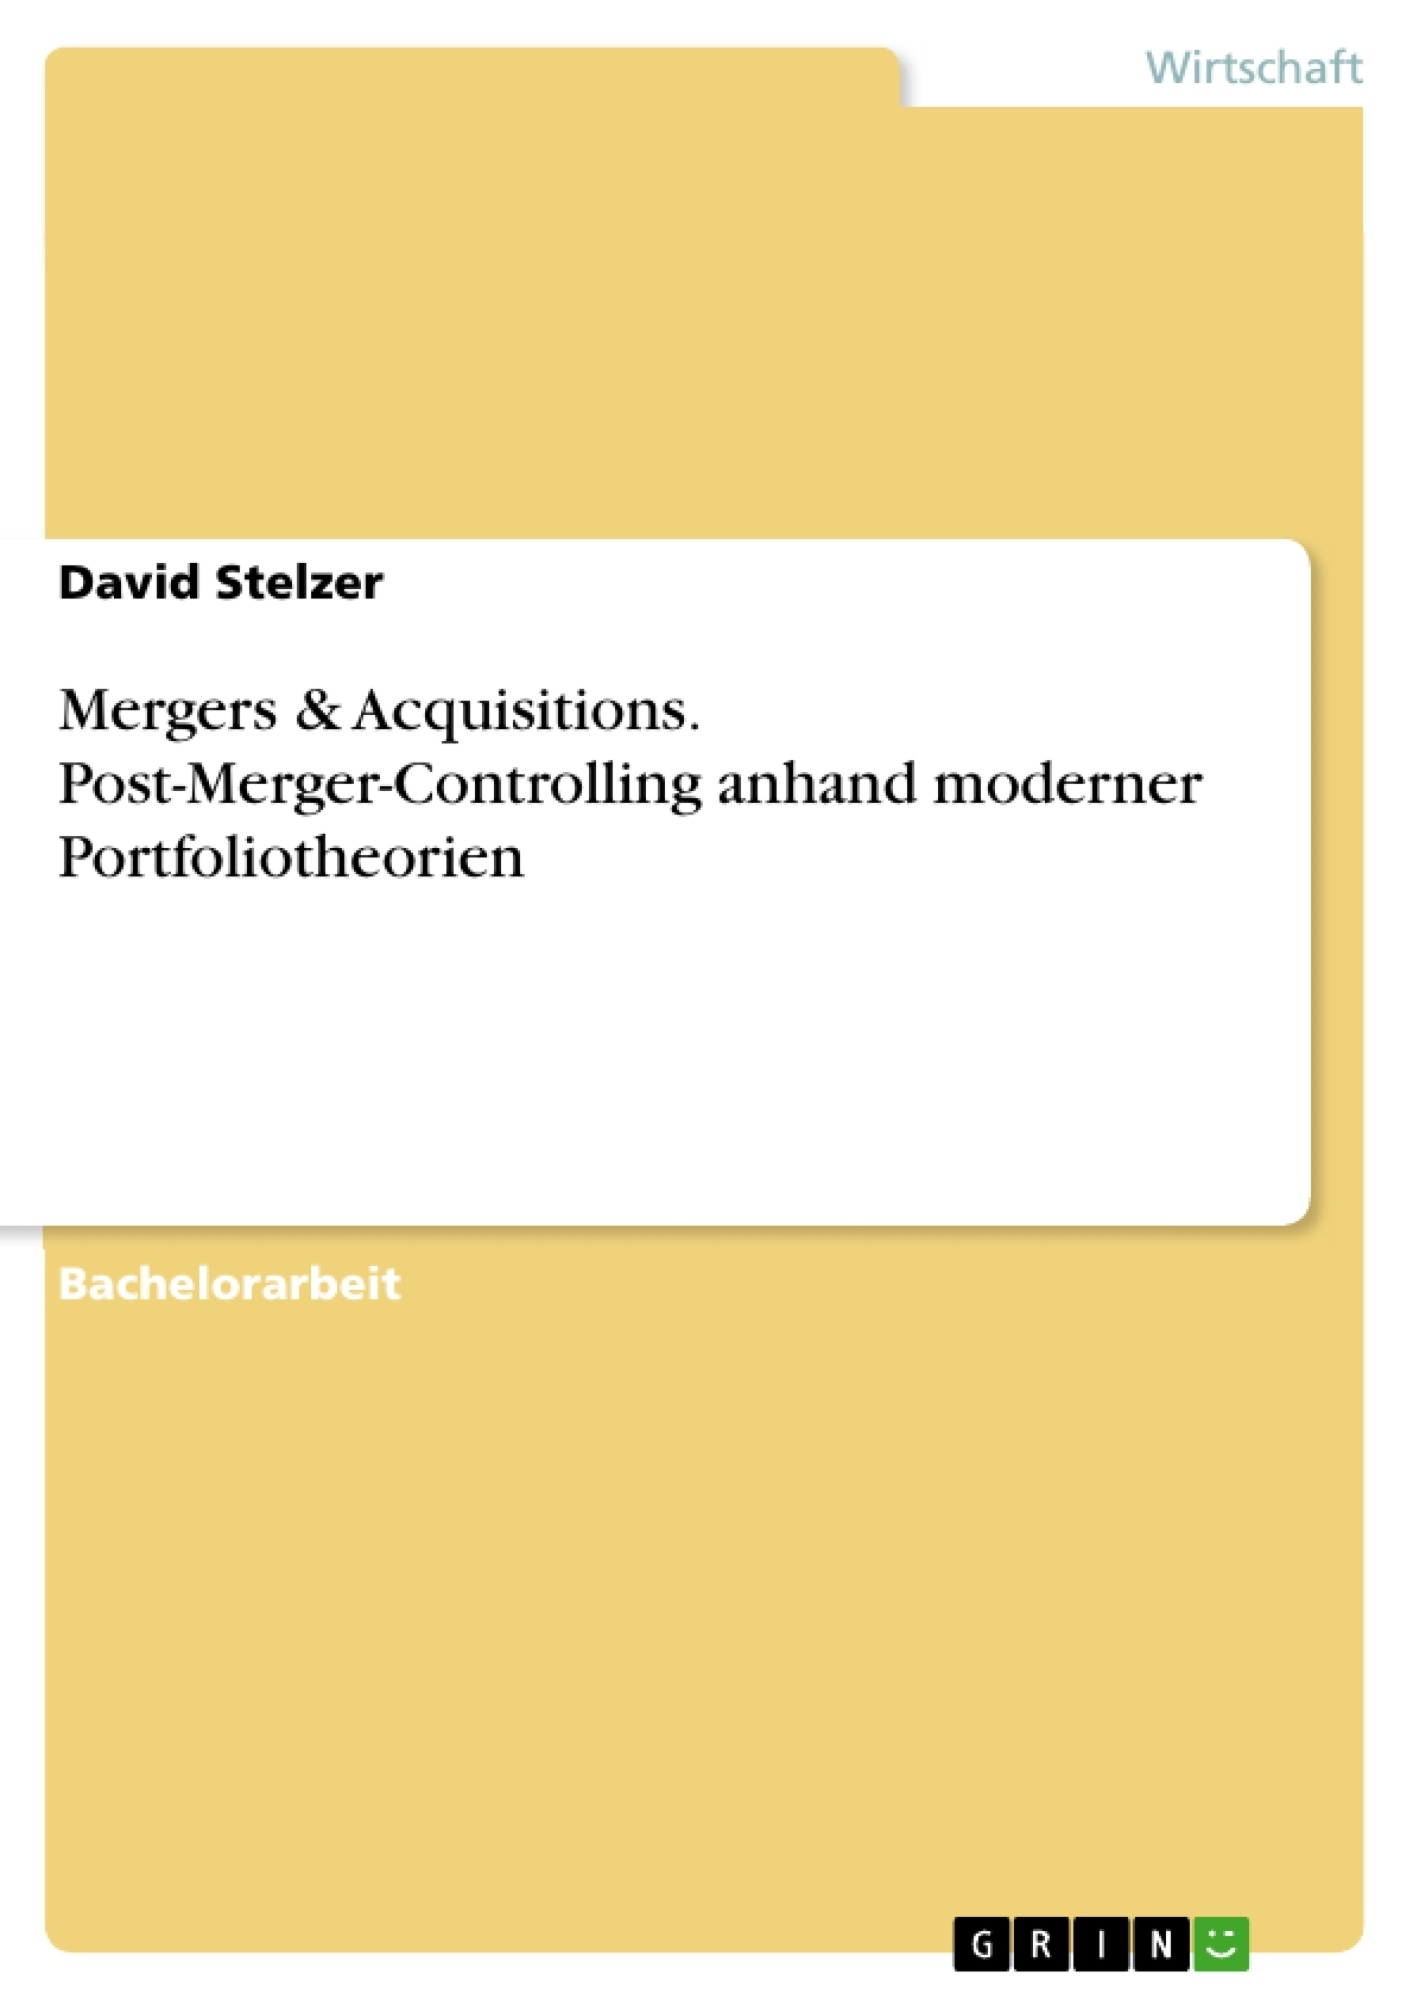 Titel: Mergers & Acquisitions. Post-Merger-Controlling anhand moderner Portfoliotheorien